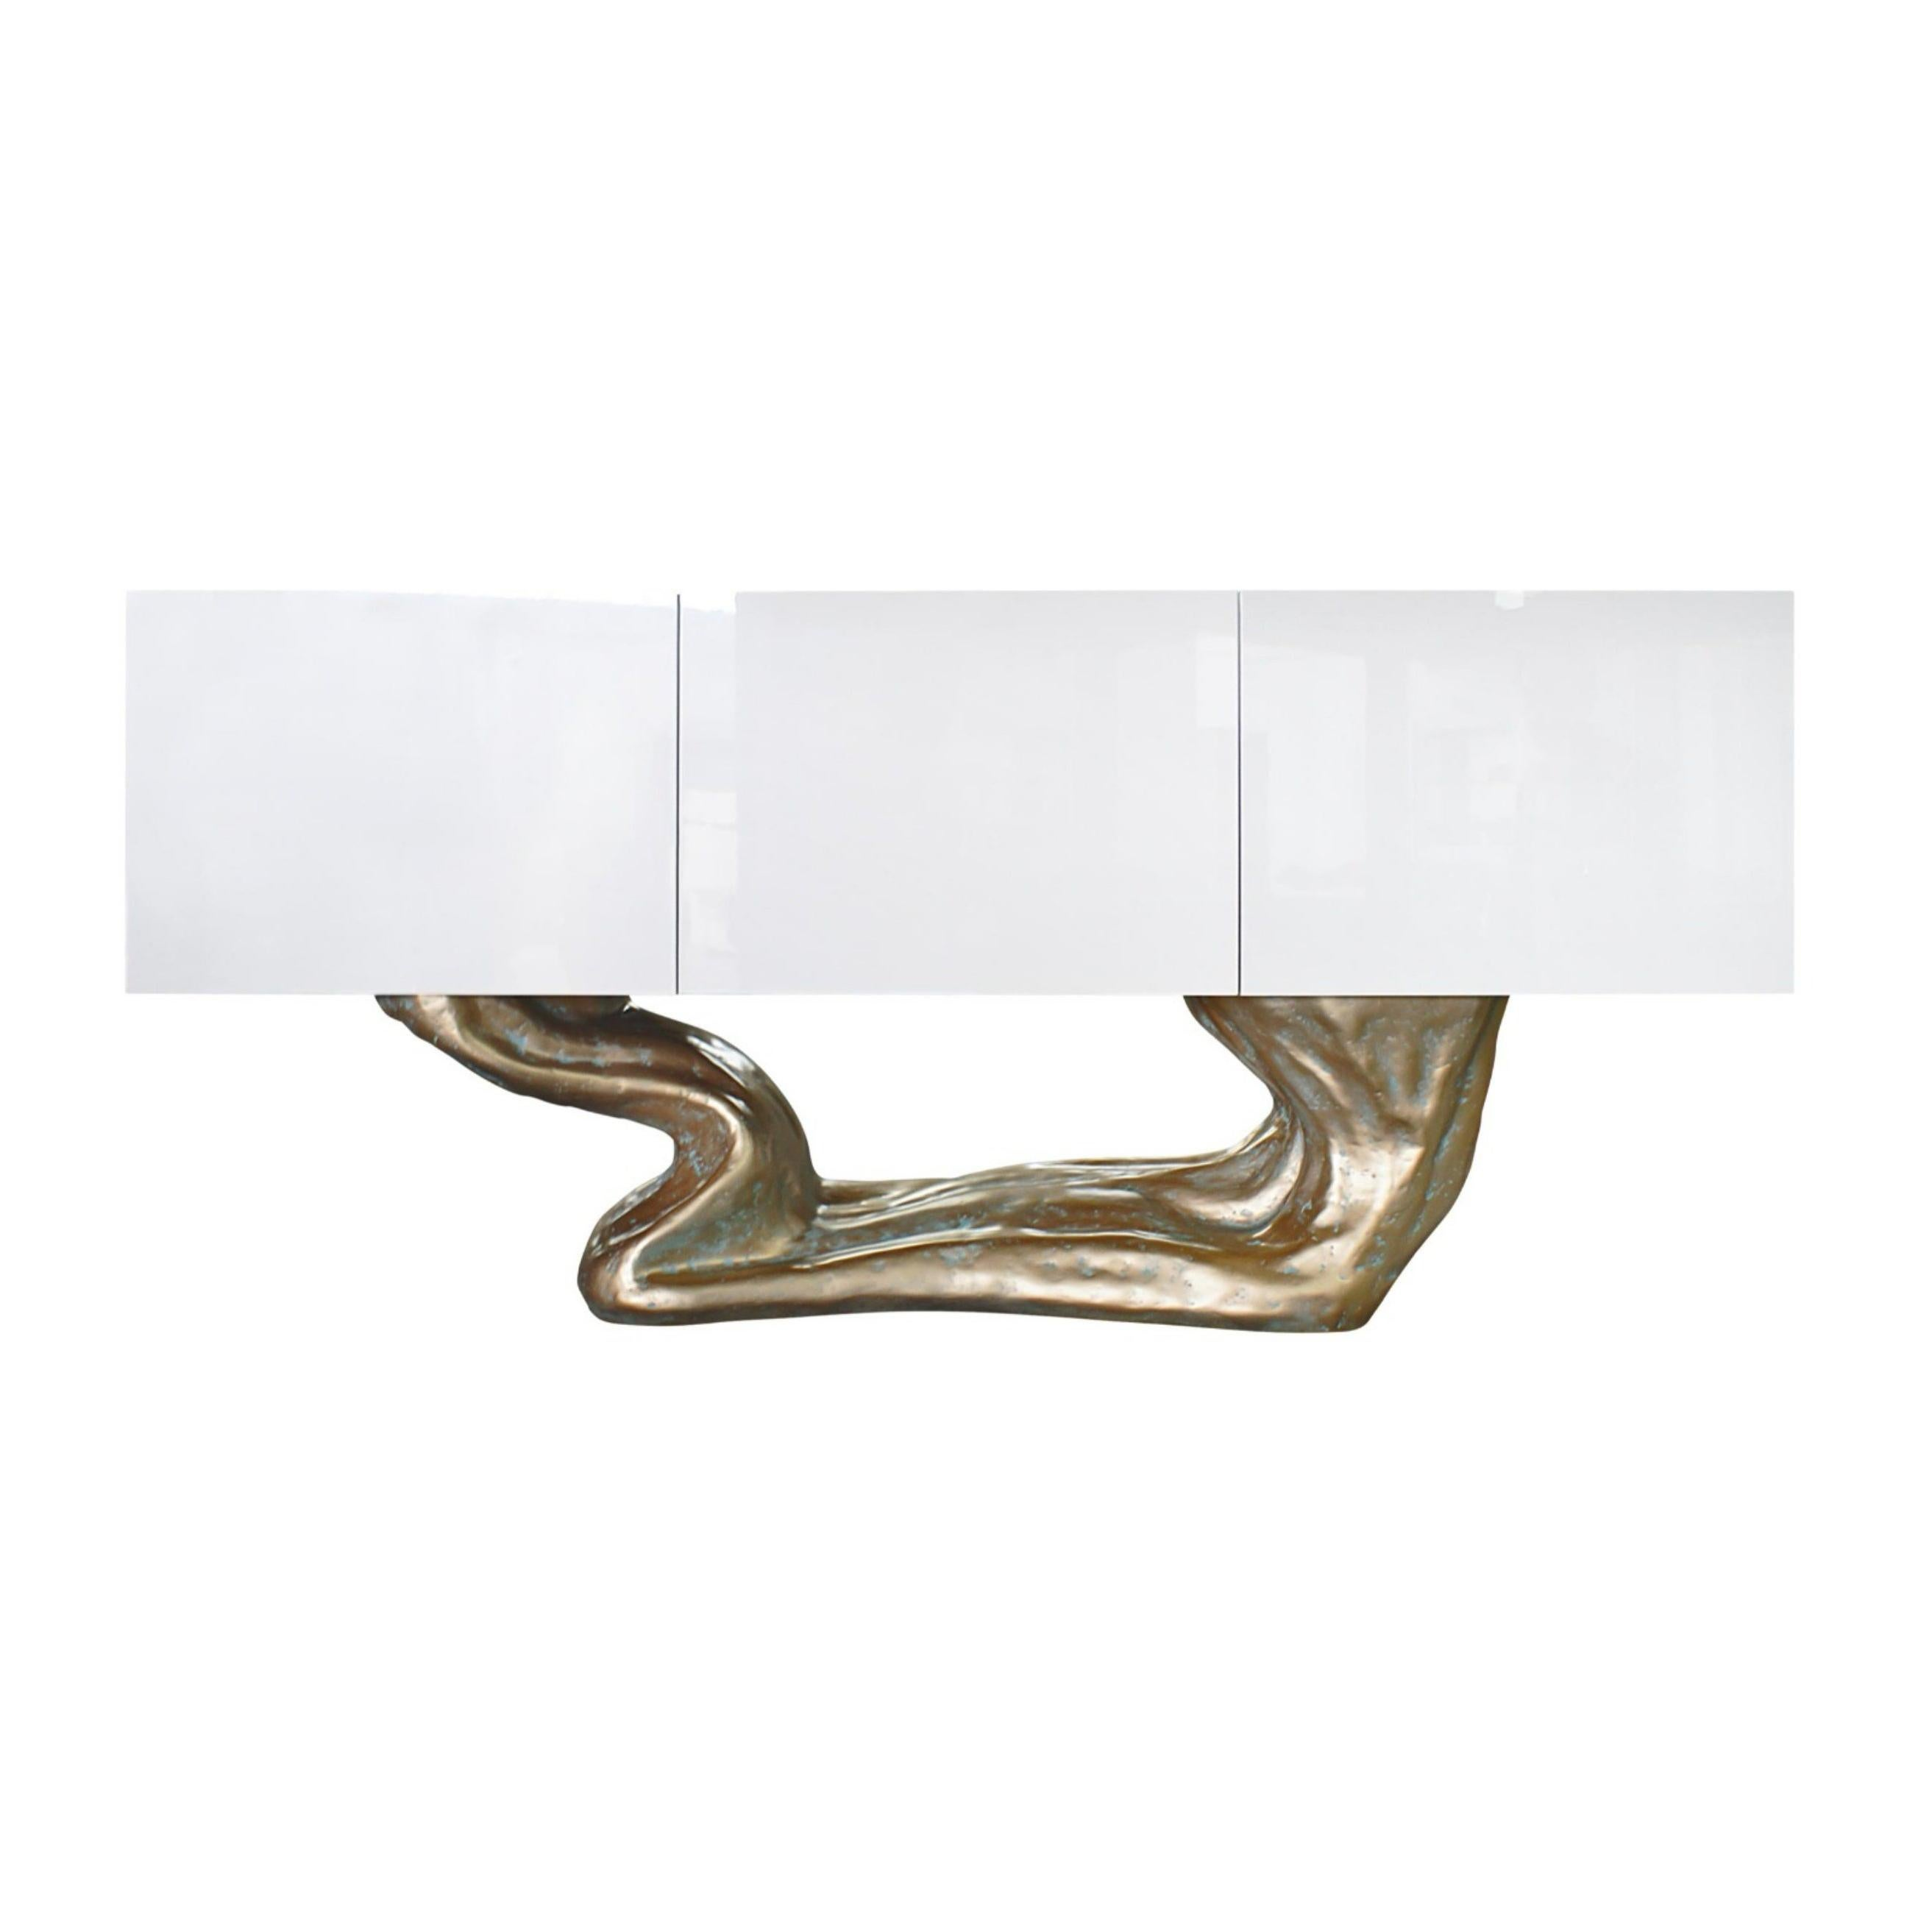 New Design Sideboard in Wood Lacquered in High Gloss White